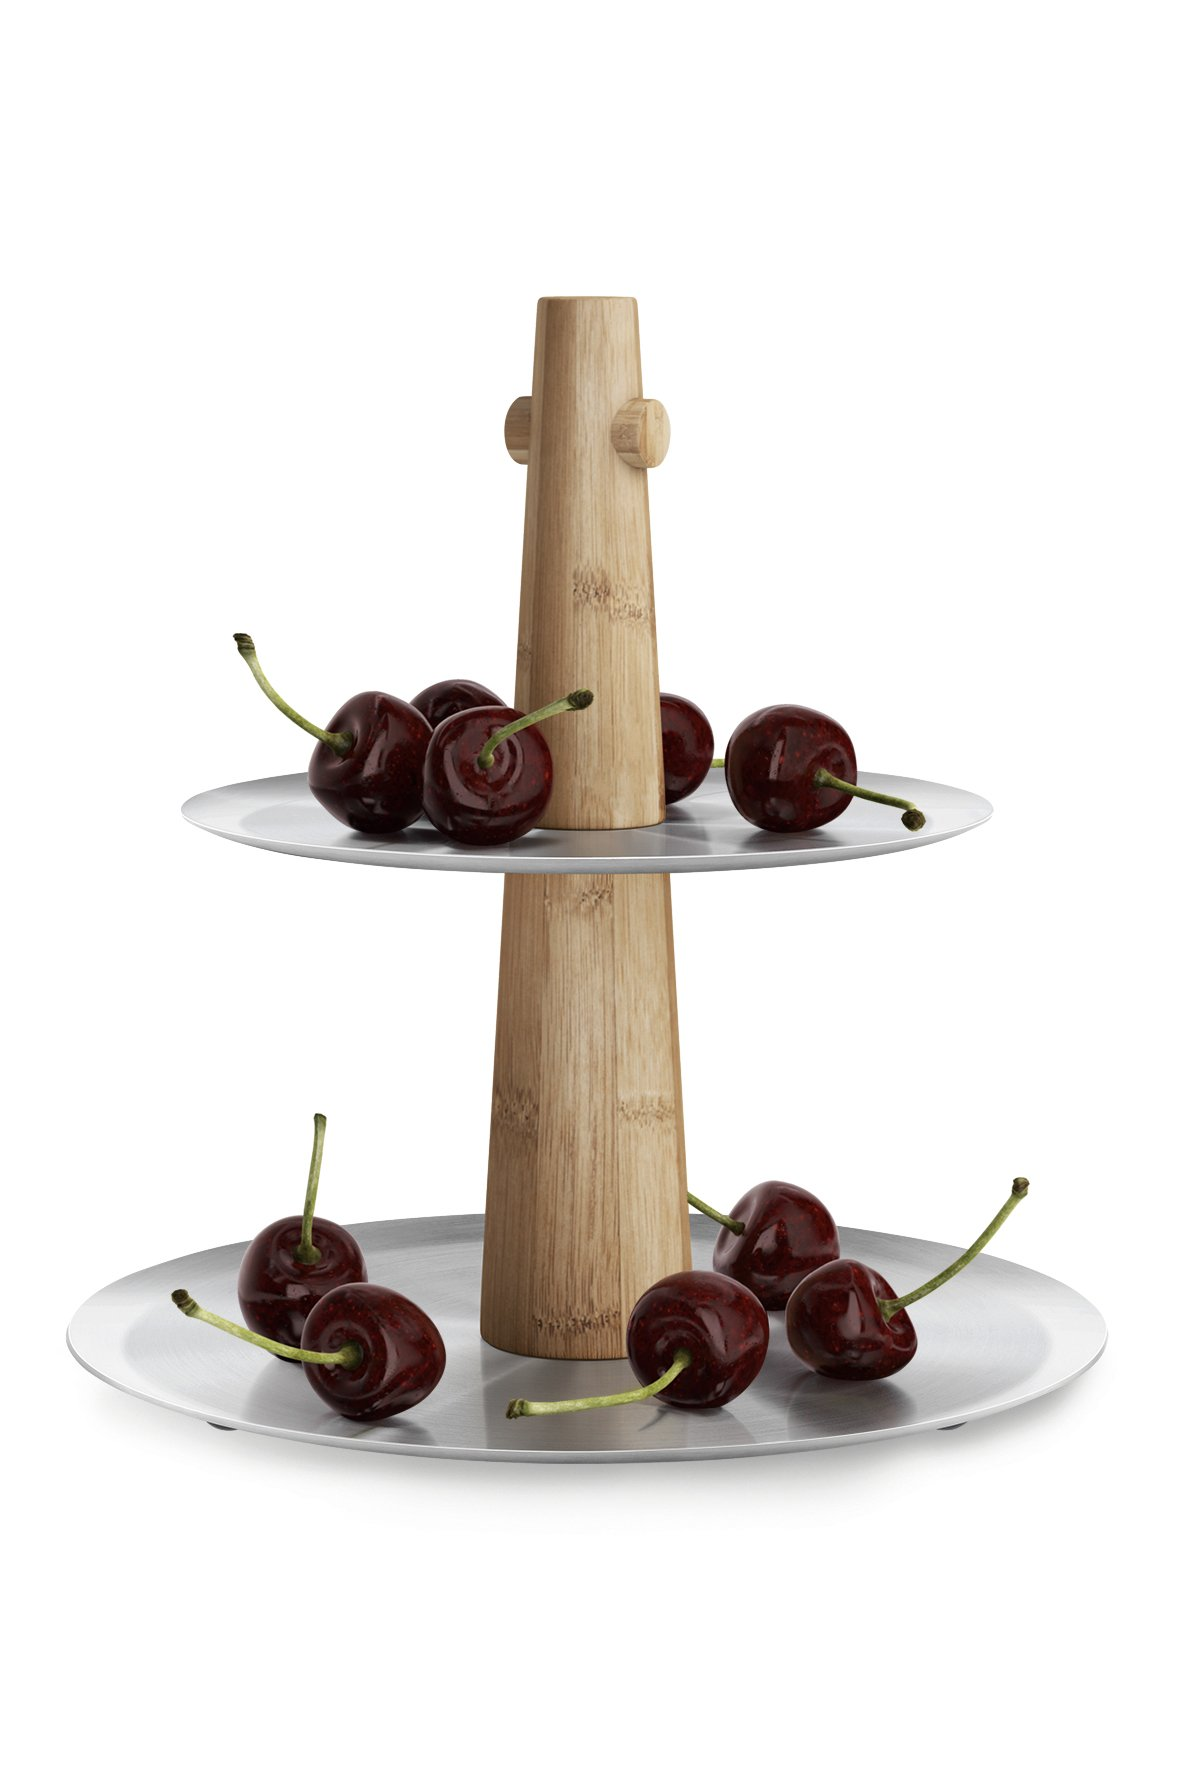 ZACK Stainless Steel Sevore Cake Stand with Rubber Feet, 8.66'' x 6.89'' x 9.13'', Silver Metallic